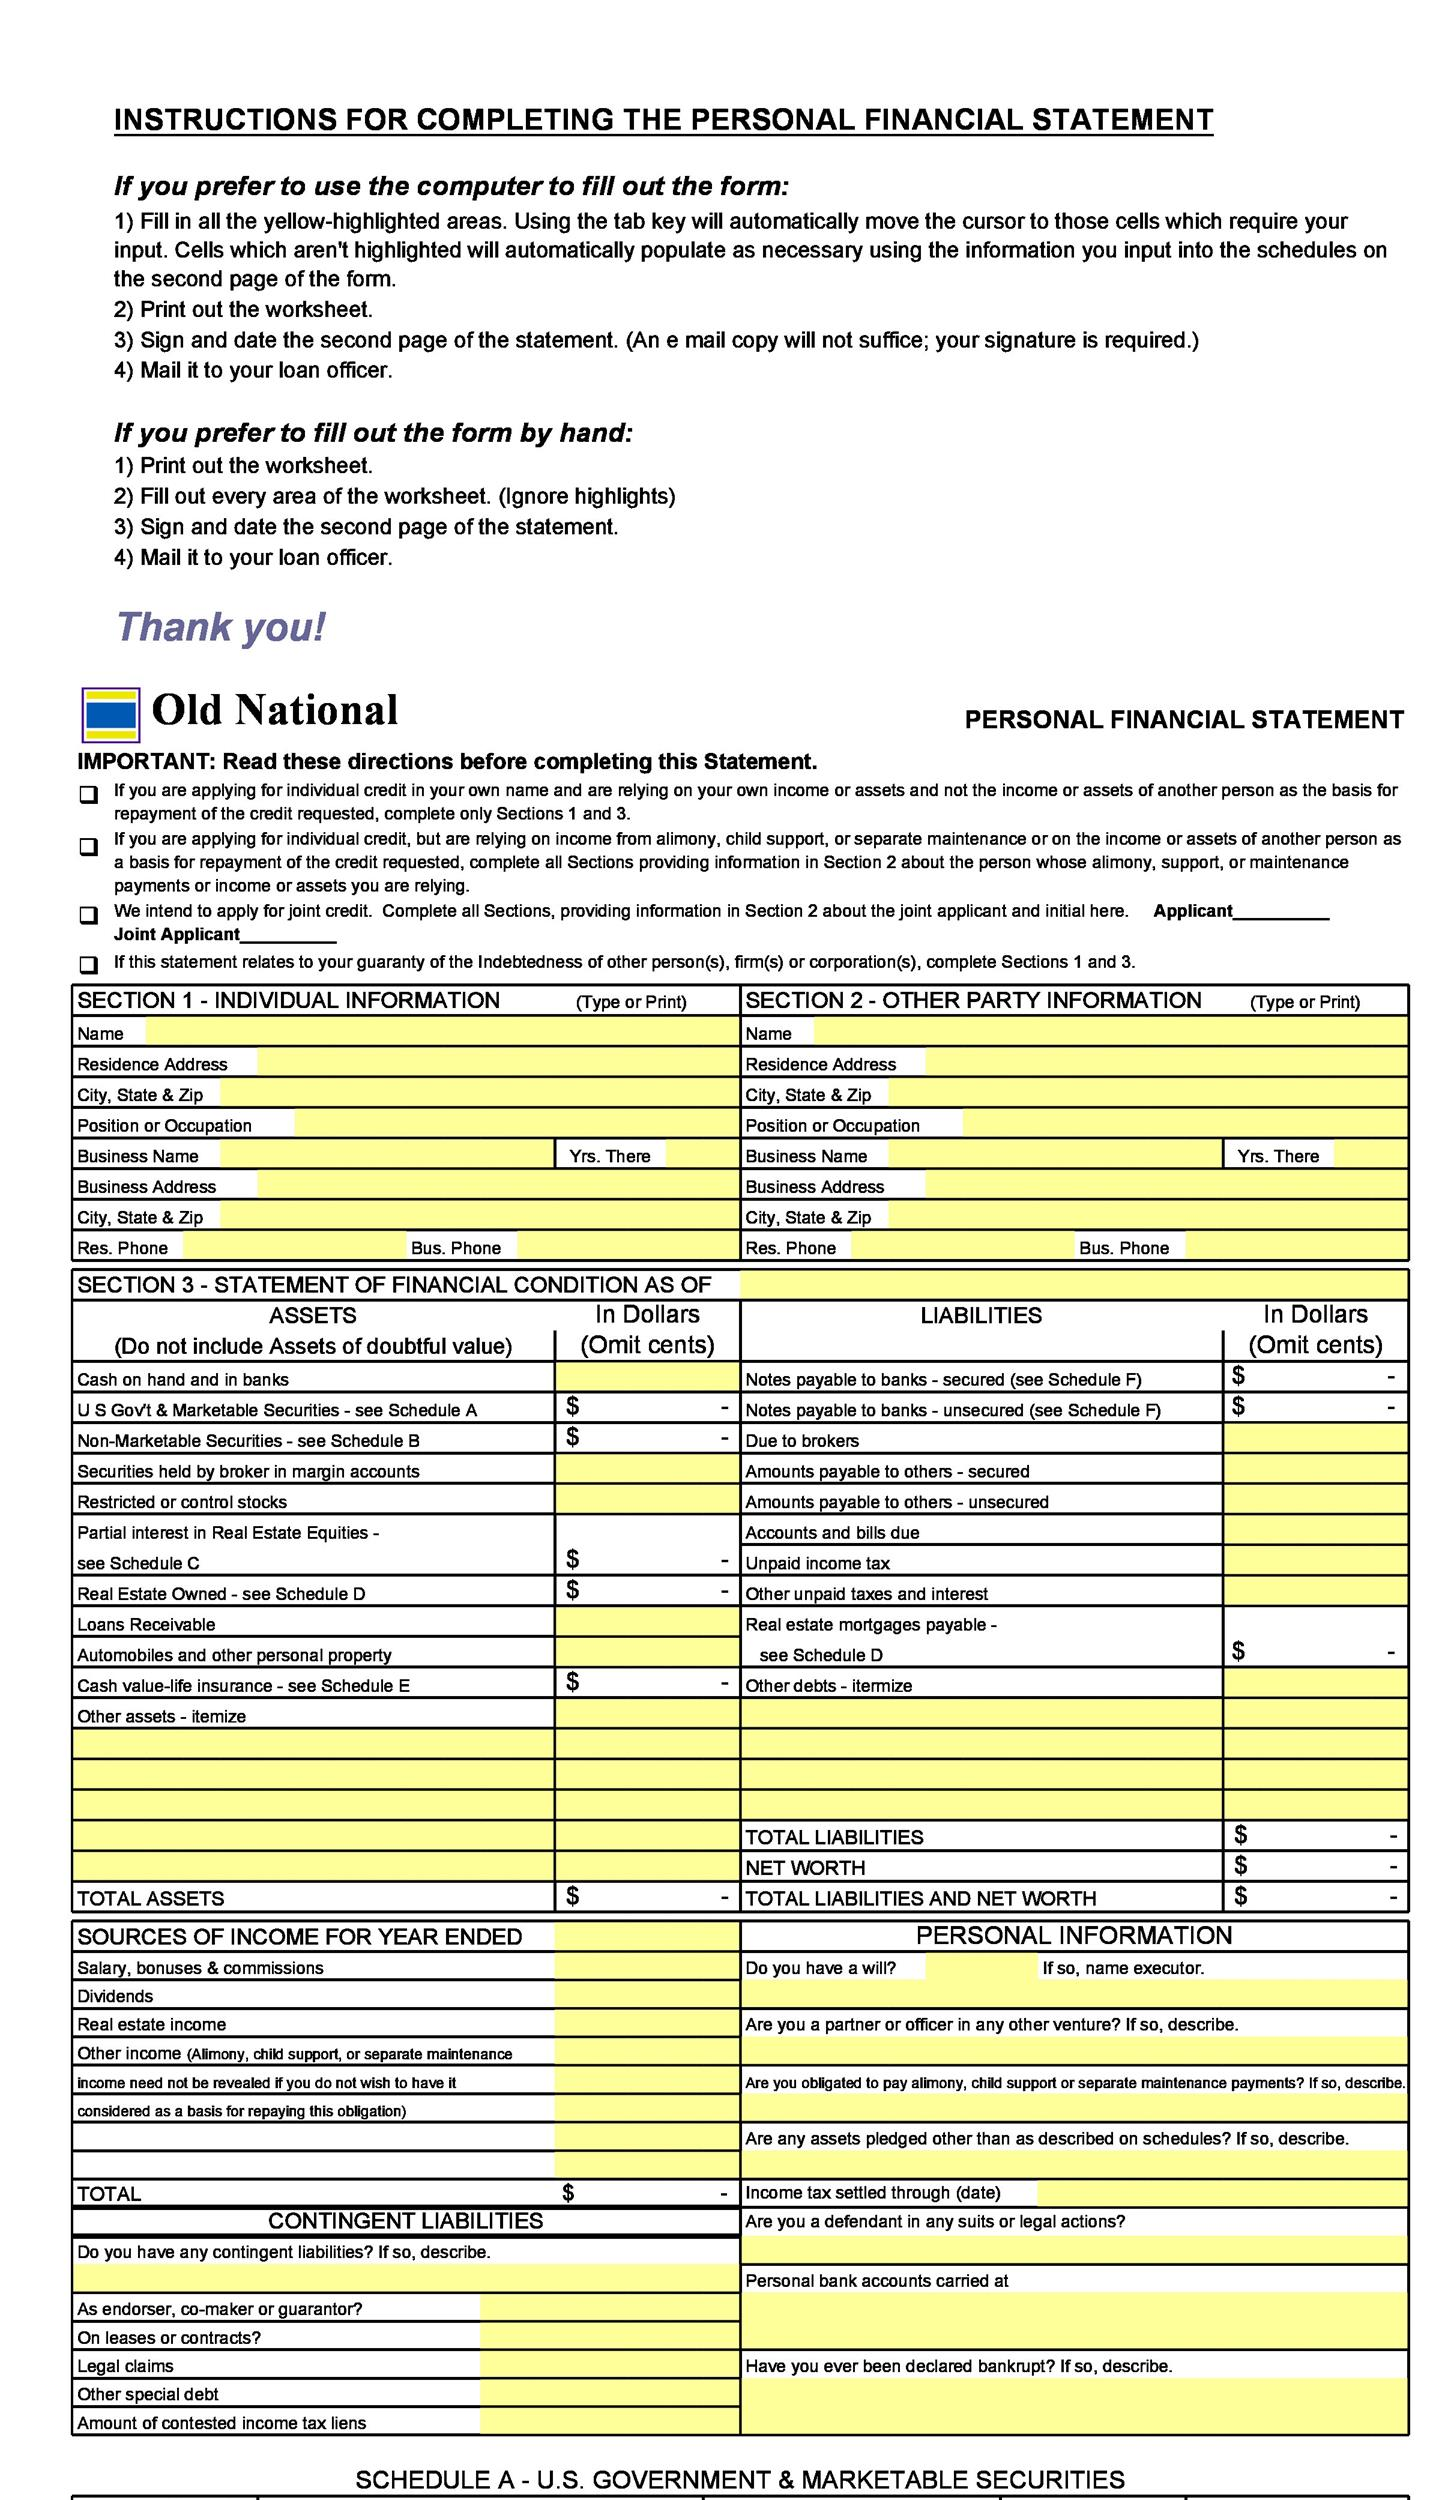 40+ Personal Financial Statement Templates  Forms ᐅ Template Lab